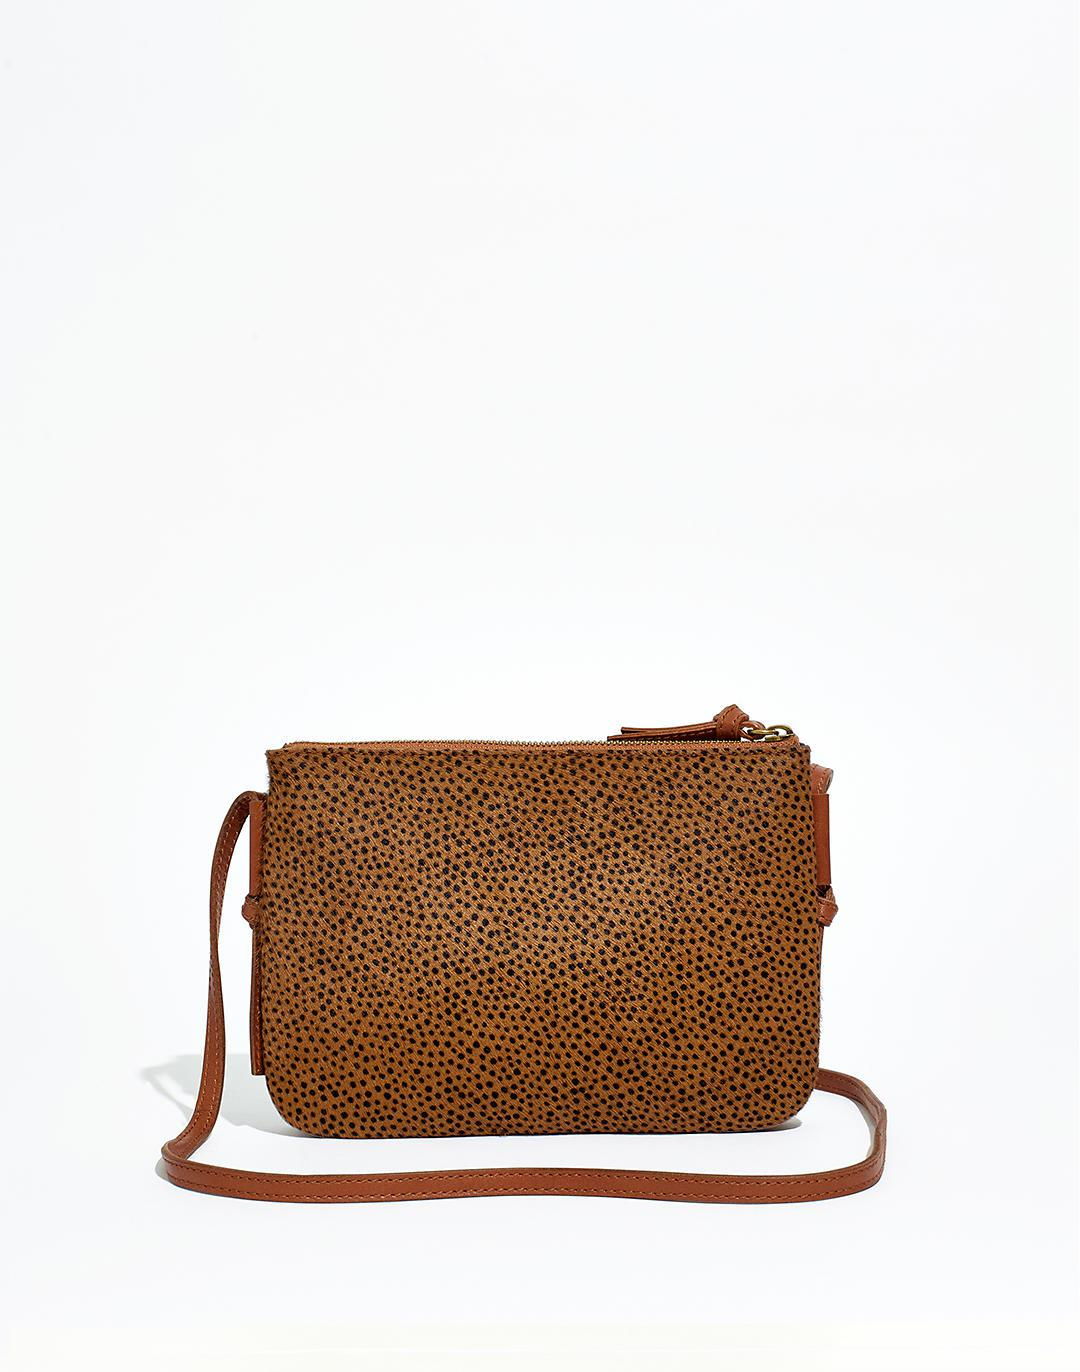 The Knotted Crossbody Bag in Spotted Calf Hair